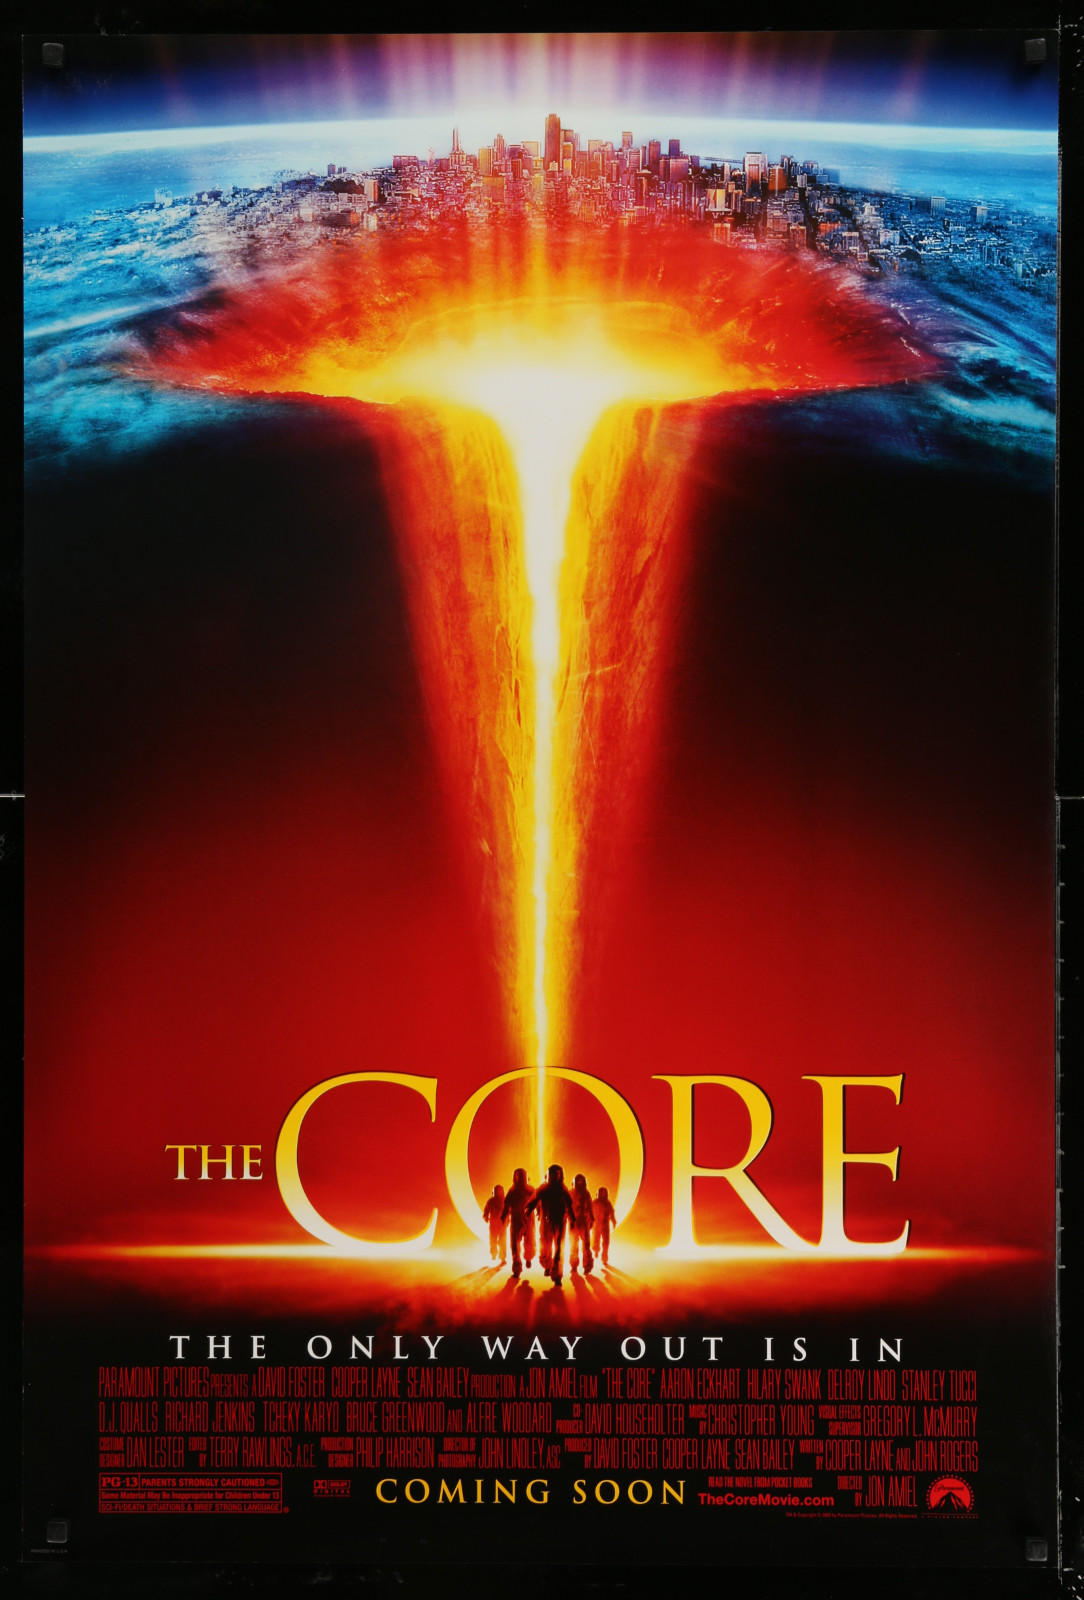 The Core 2A391 A Part Of A Lot 24 Unfolded Double-Sided 27X40 One-Sheets '90S-00S Great Movie Images!